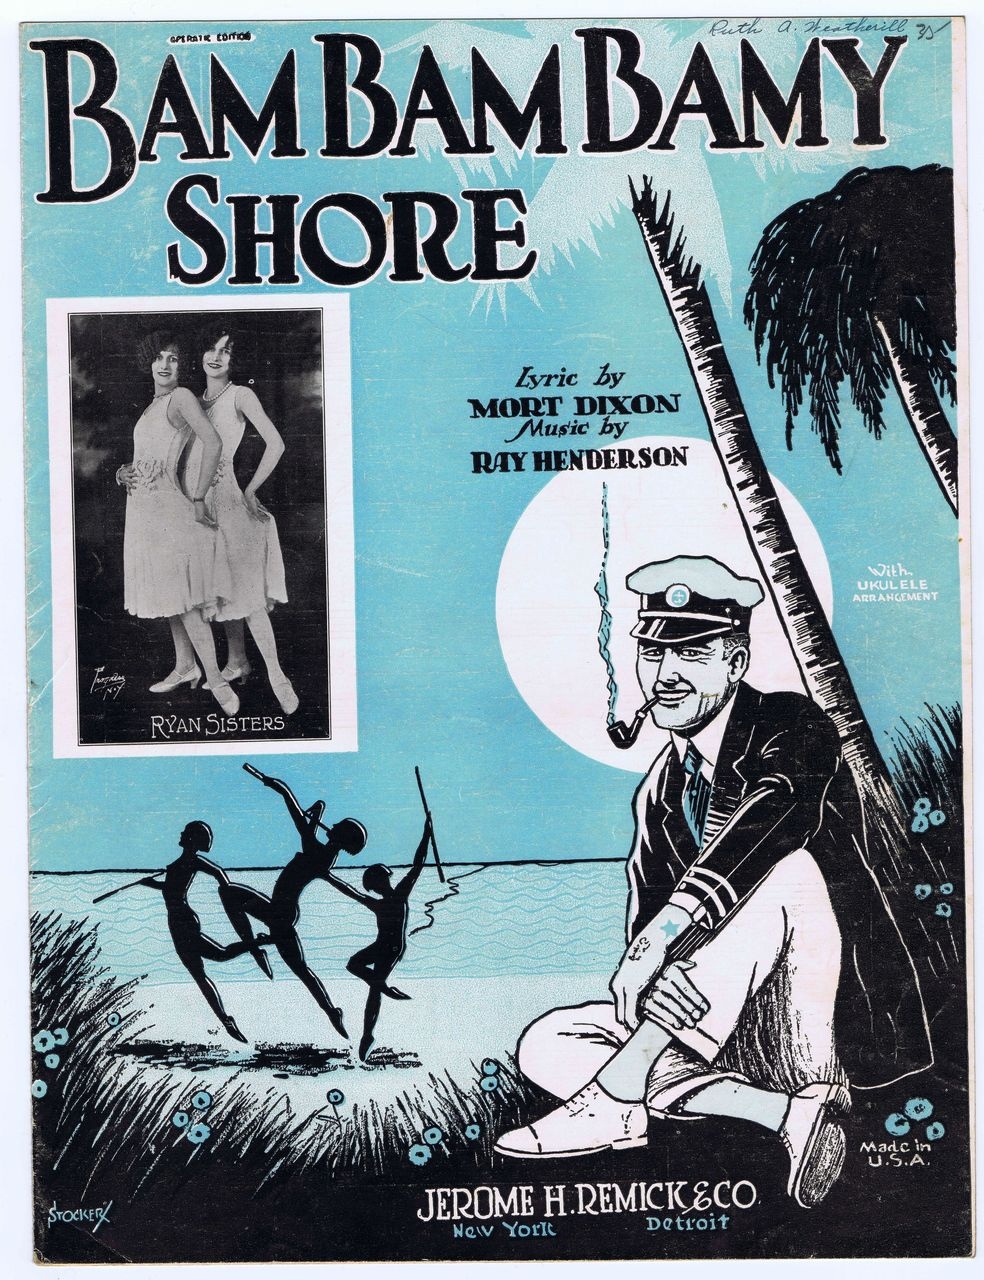 'Bam Bam Bamy Shore' - feat. Ryan Sisters - c.1920s SHEET MUSIC